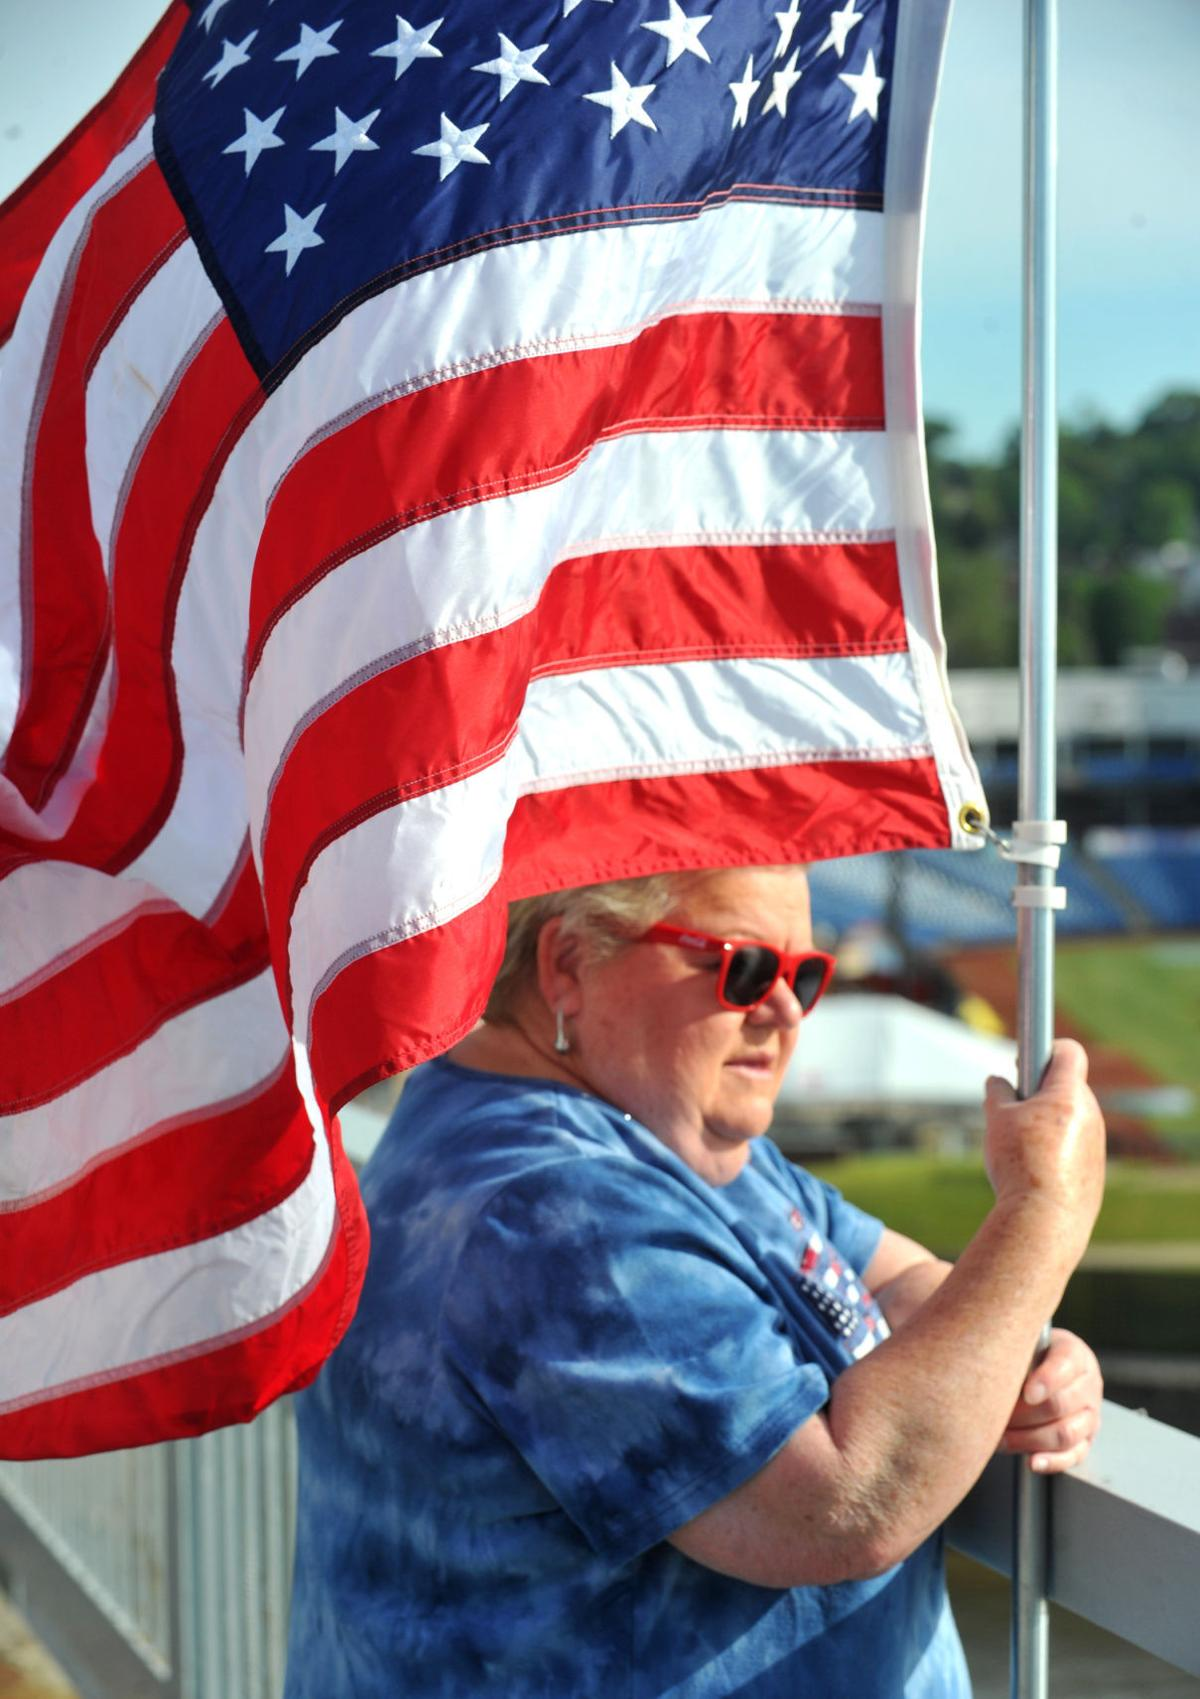 061521-qc-nws-flags-227